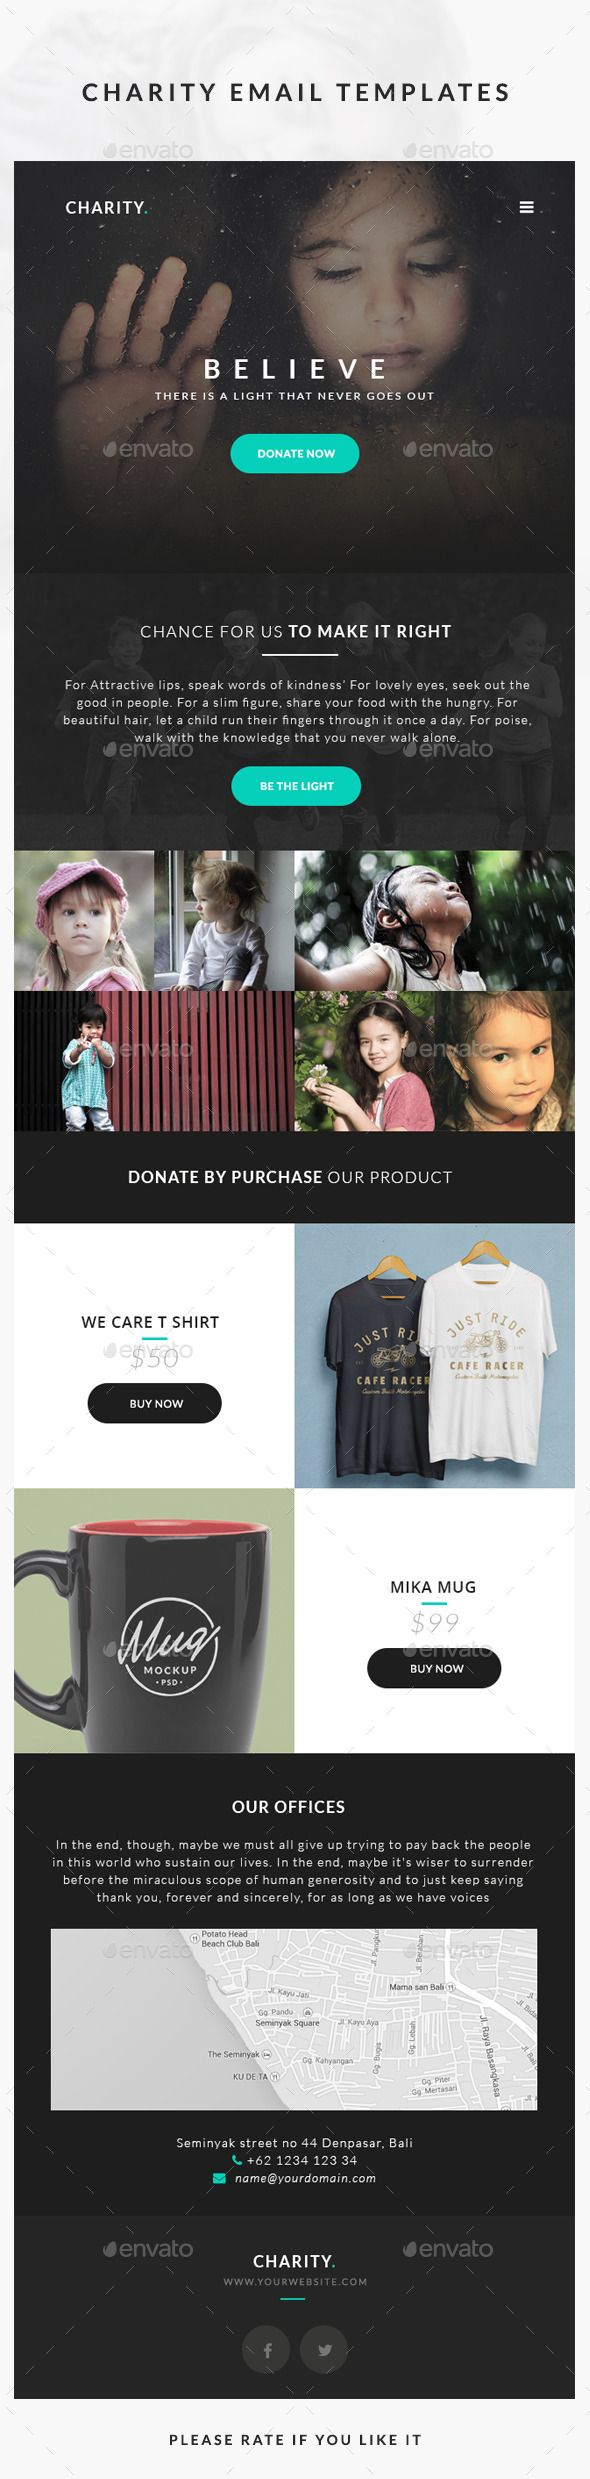 37 best Email Marketing images on Pinterest | Email newsletter ...